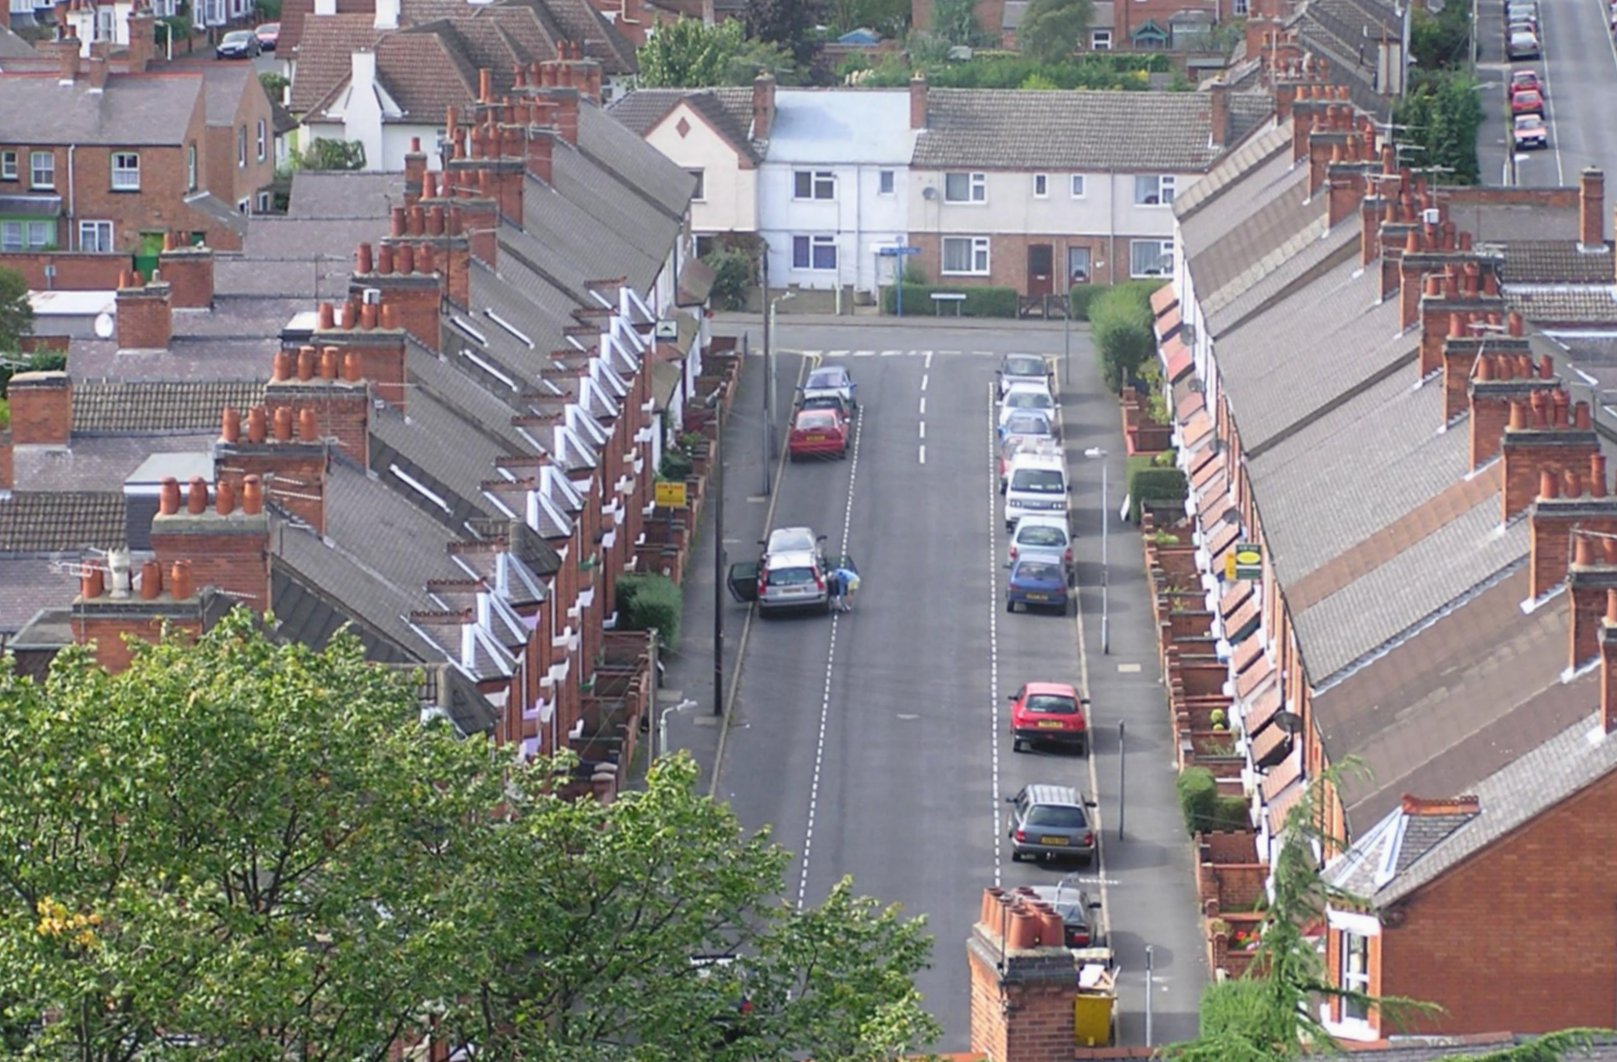 Image of terraced housing